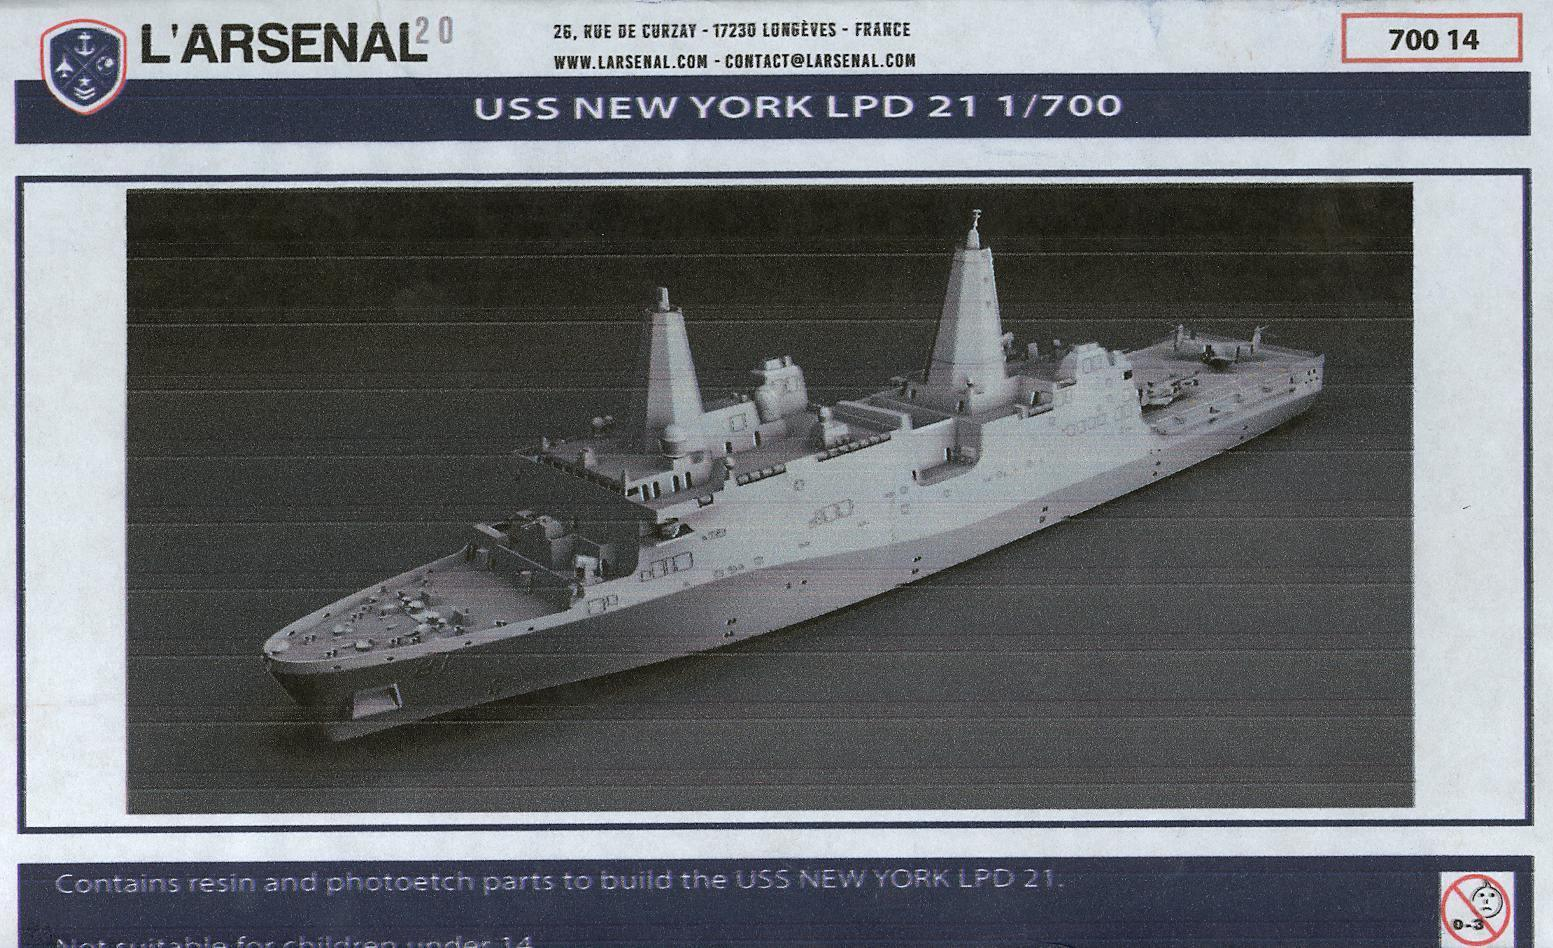 L'Arsenal Models 1 700 U.S.S. NEW YORK LPD 21 Resin & Photo Etch Model